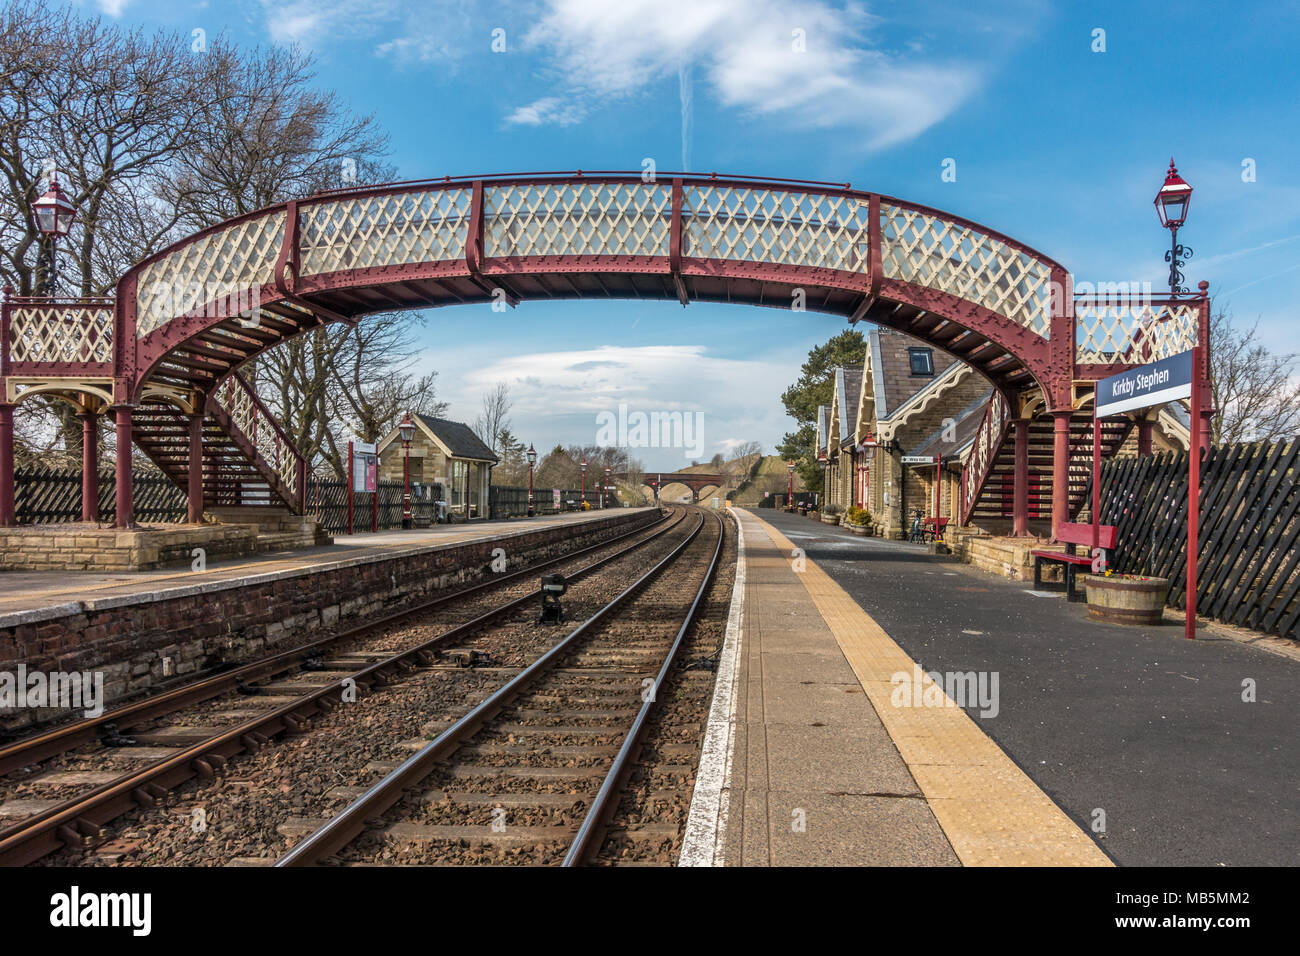 Looking down the salt gritted platform and railway tracks of Kirkby Stephen on a beautiful spring day, Yorkshire Dales - Stock Image